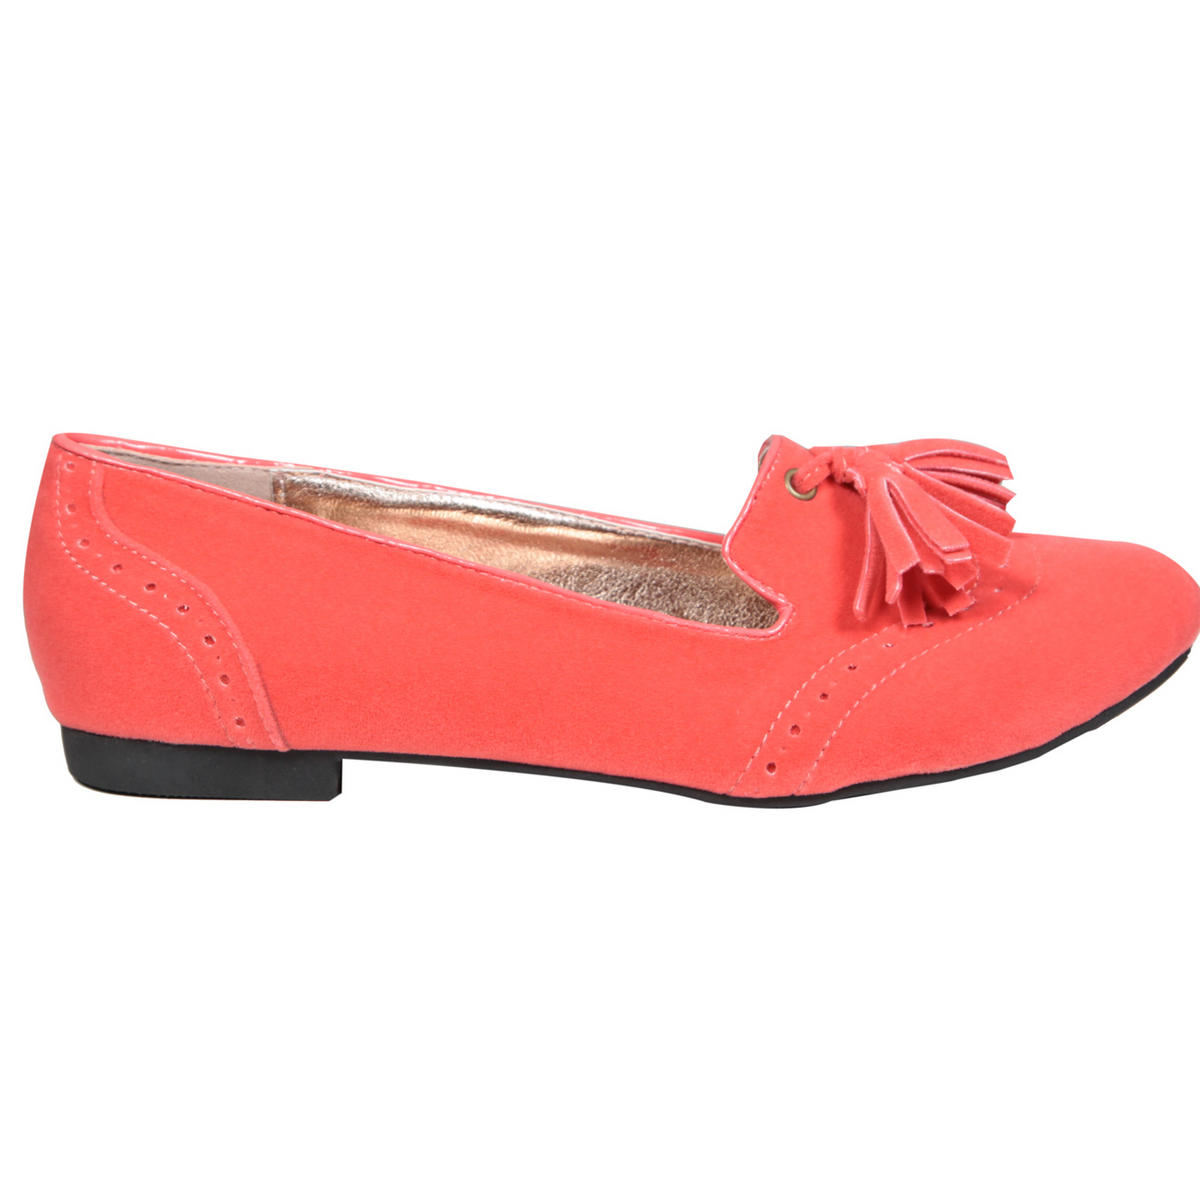 Coral Tassel Flat Slipper Shoe Preview